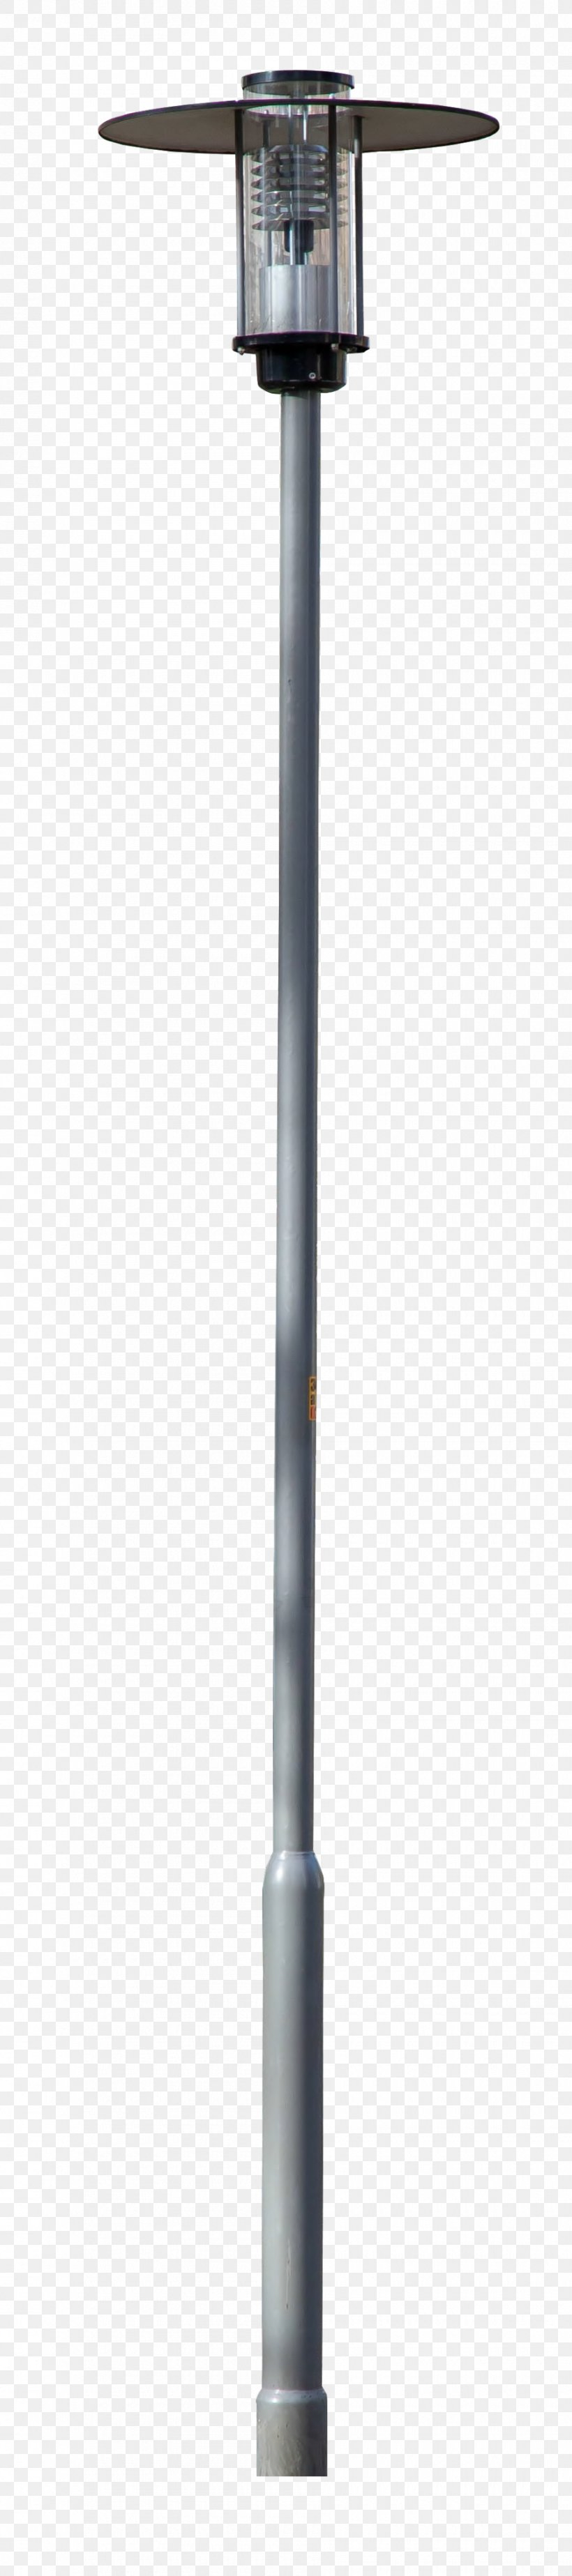 Street Light Lighting, PNG, 900x4056px, Light, Electric Light, Lantern, Lighting, Product Design Download Free